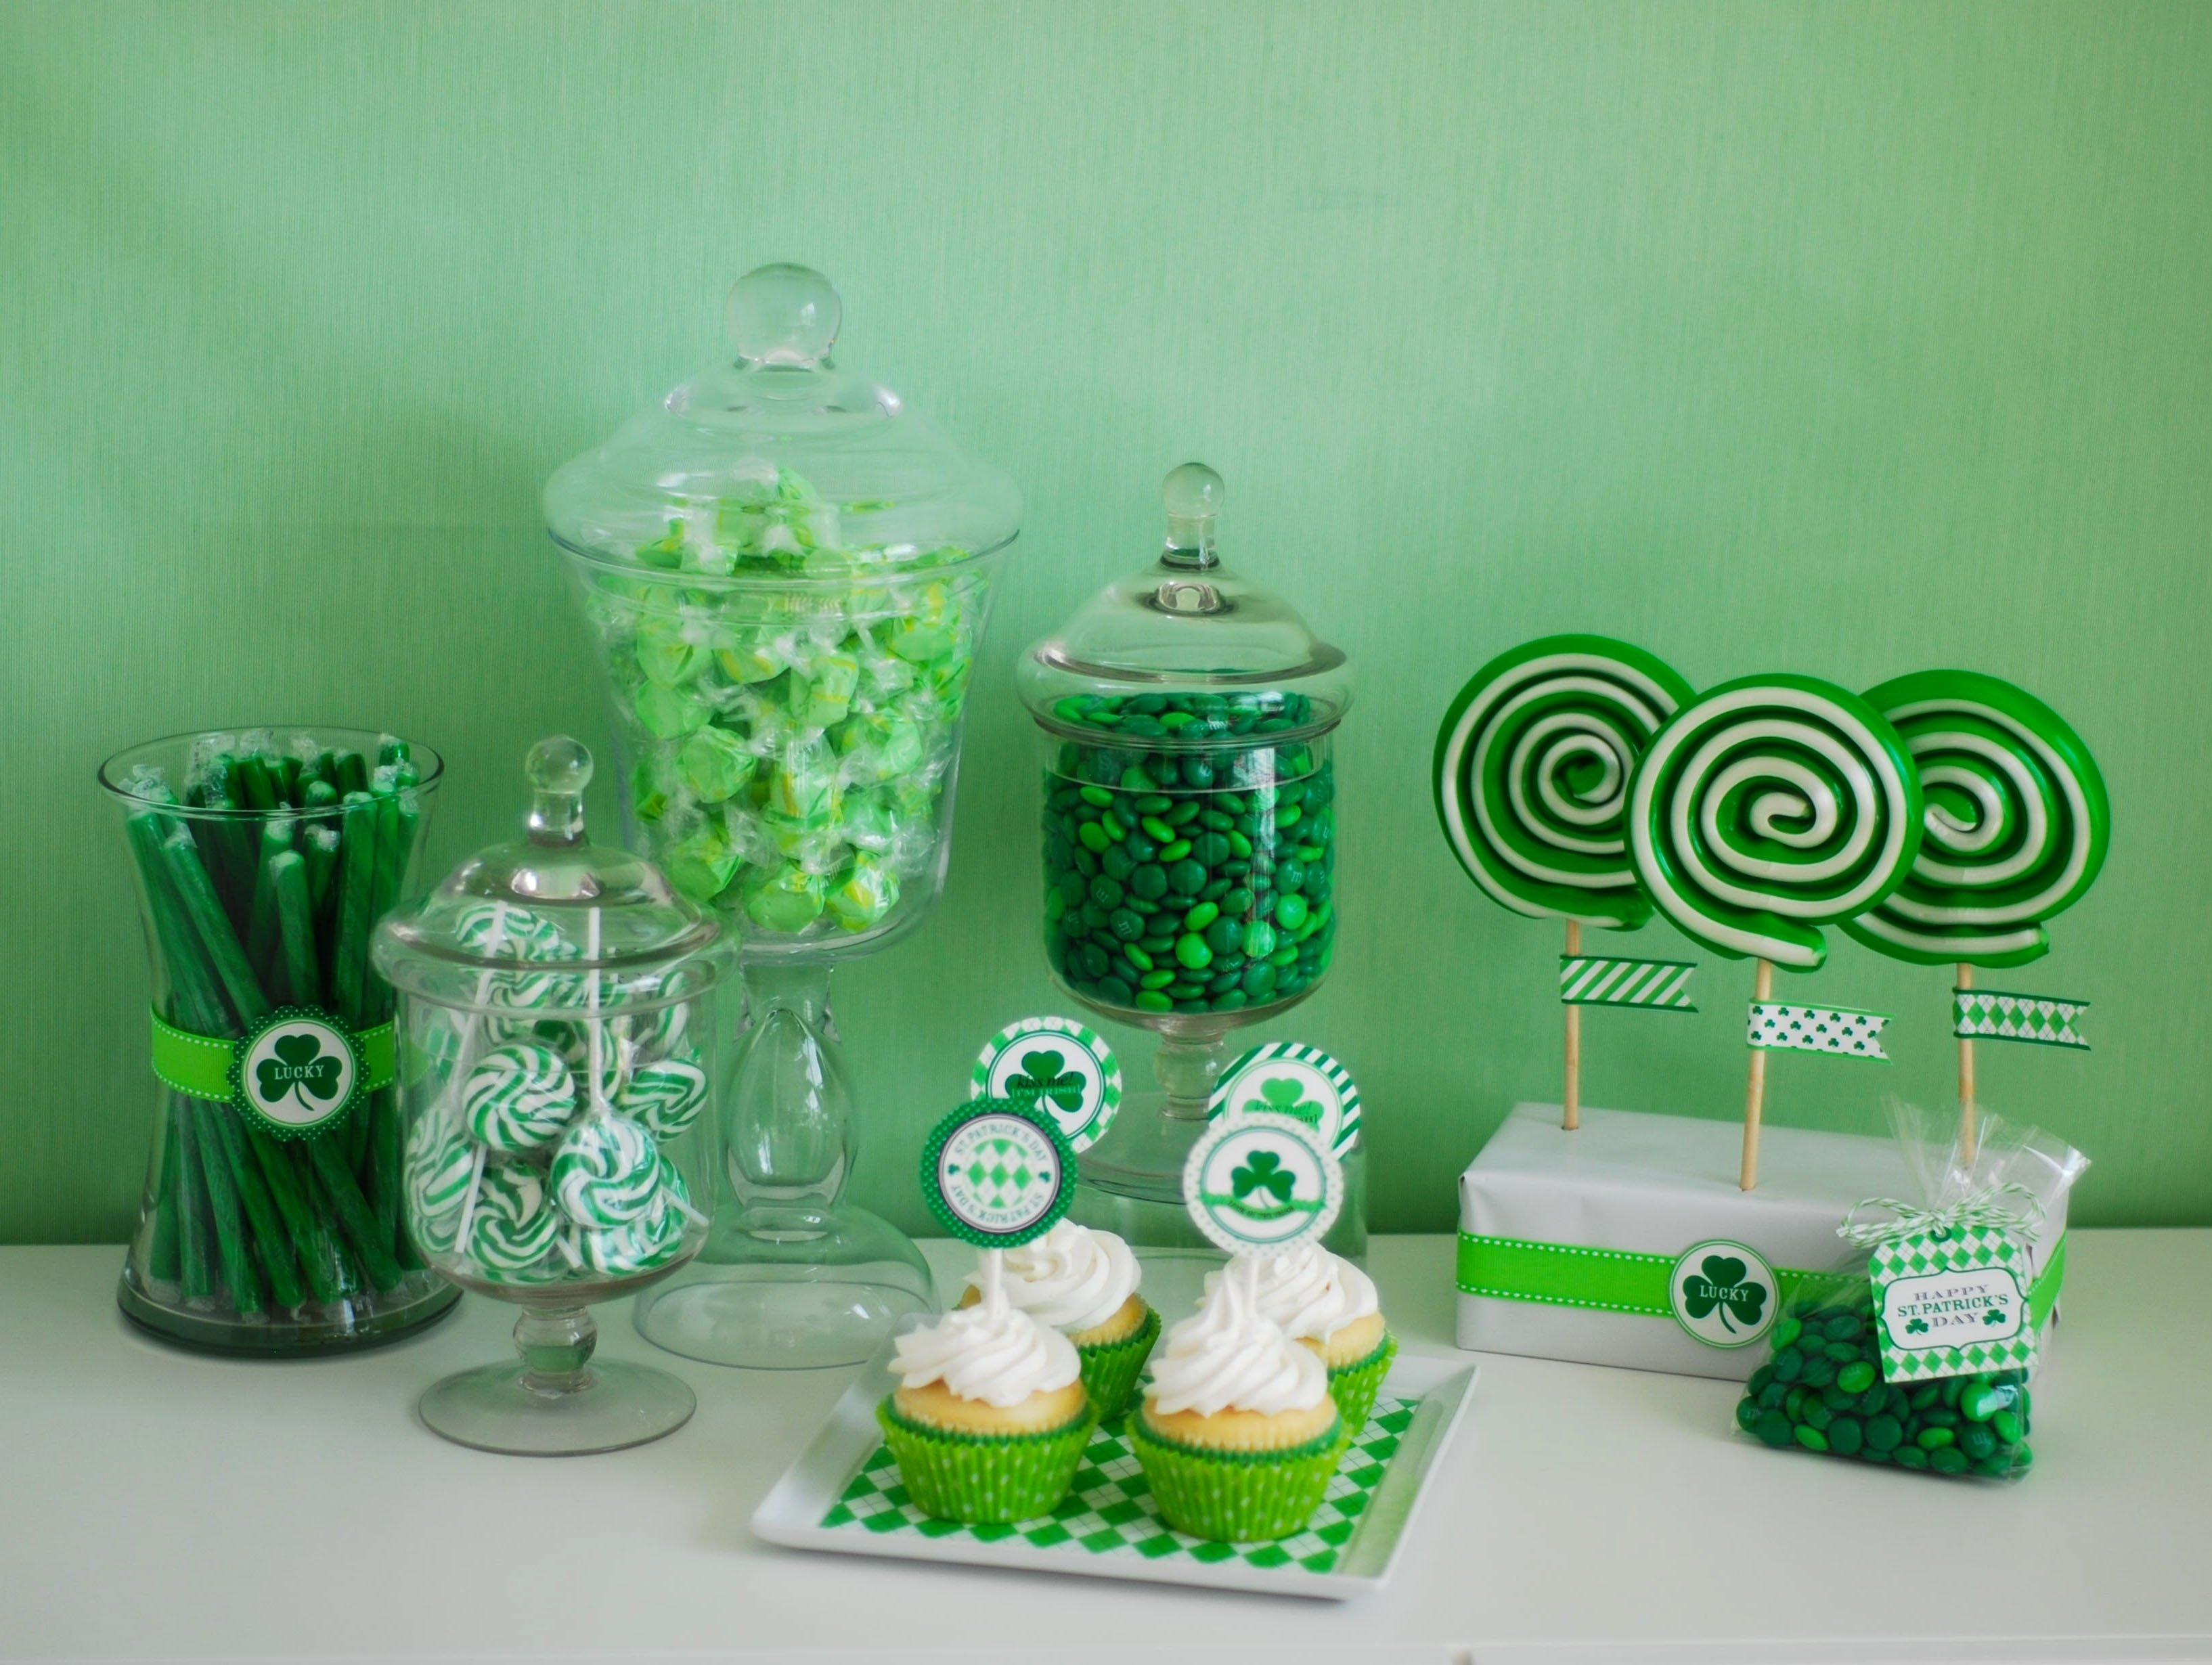 10 Lovable St Patrick Day Party Ideas st patricks day printable sale anders ruff custom designs llc 2020